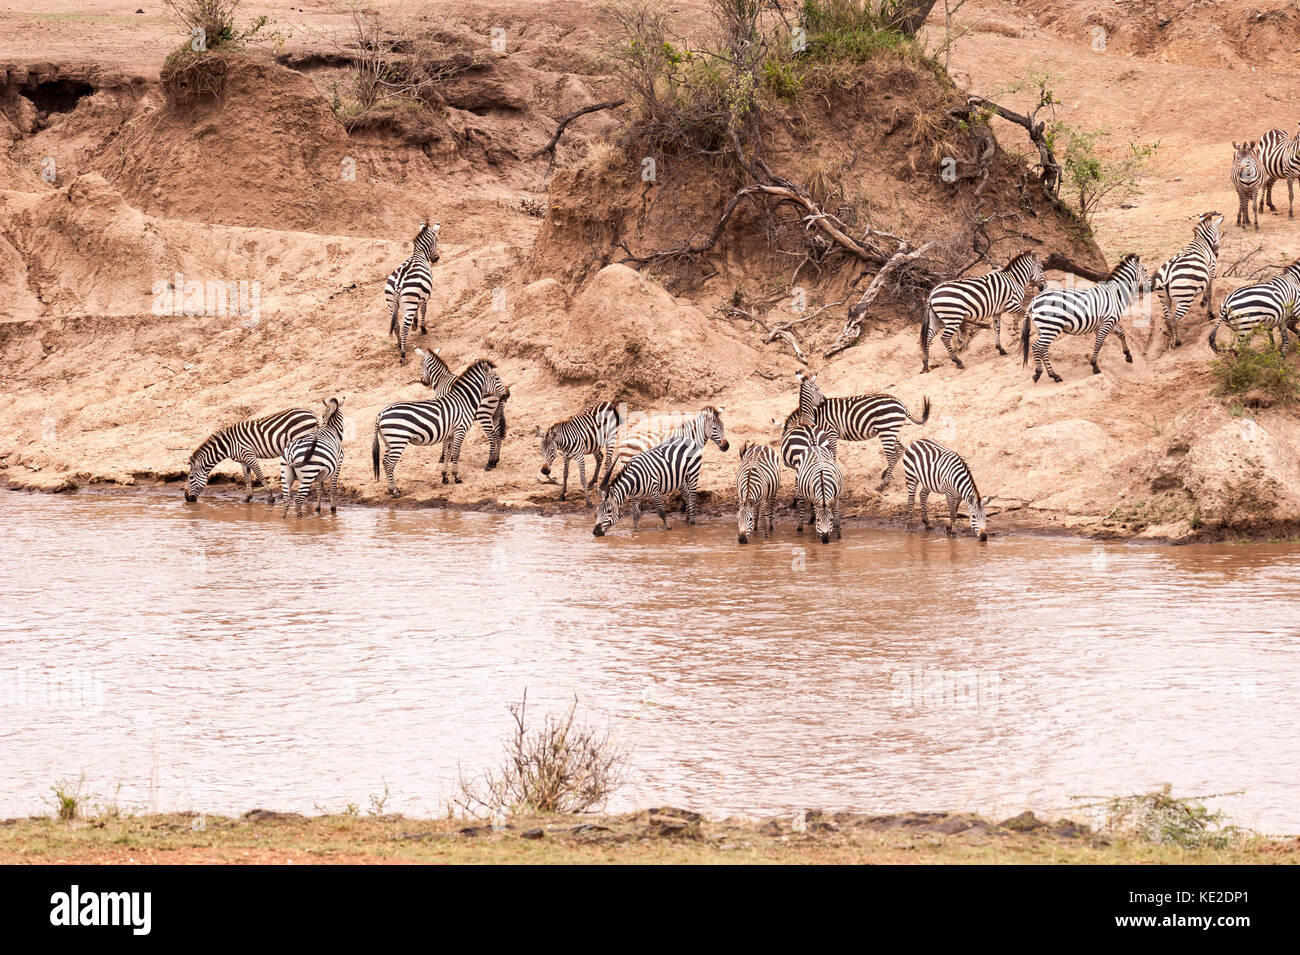 Zebra on the Great Animal migration in the  Maasai Mara National Reserve - Stock Image